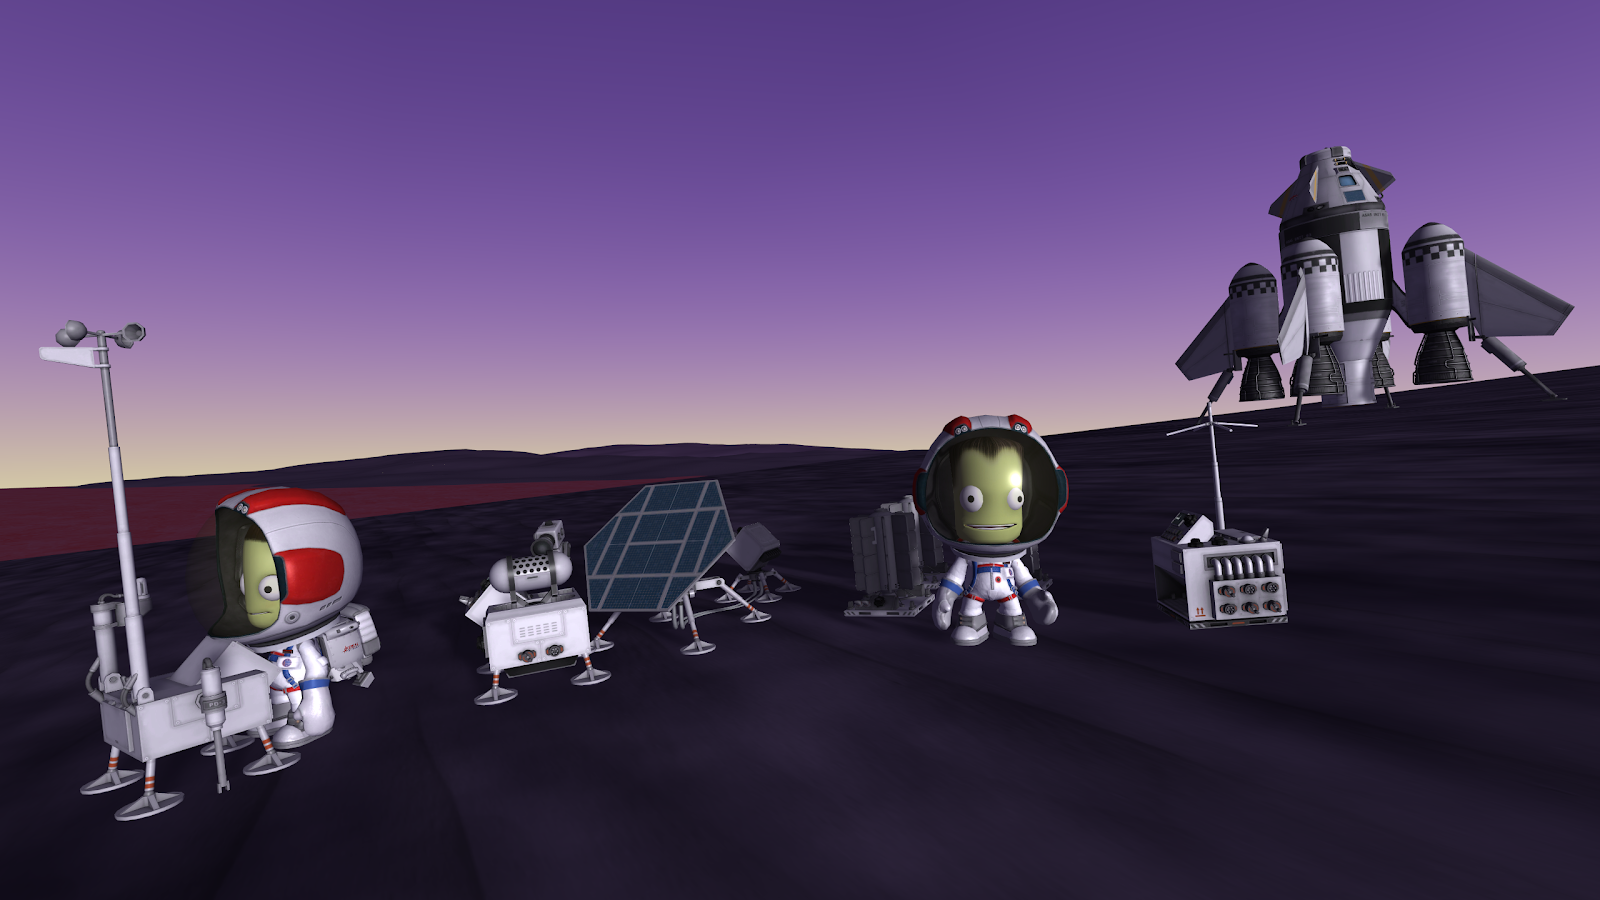 If you could add 5 features to the Kerbal Space Program